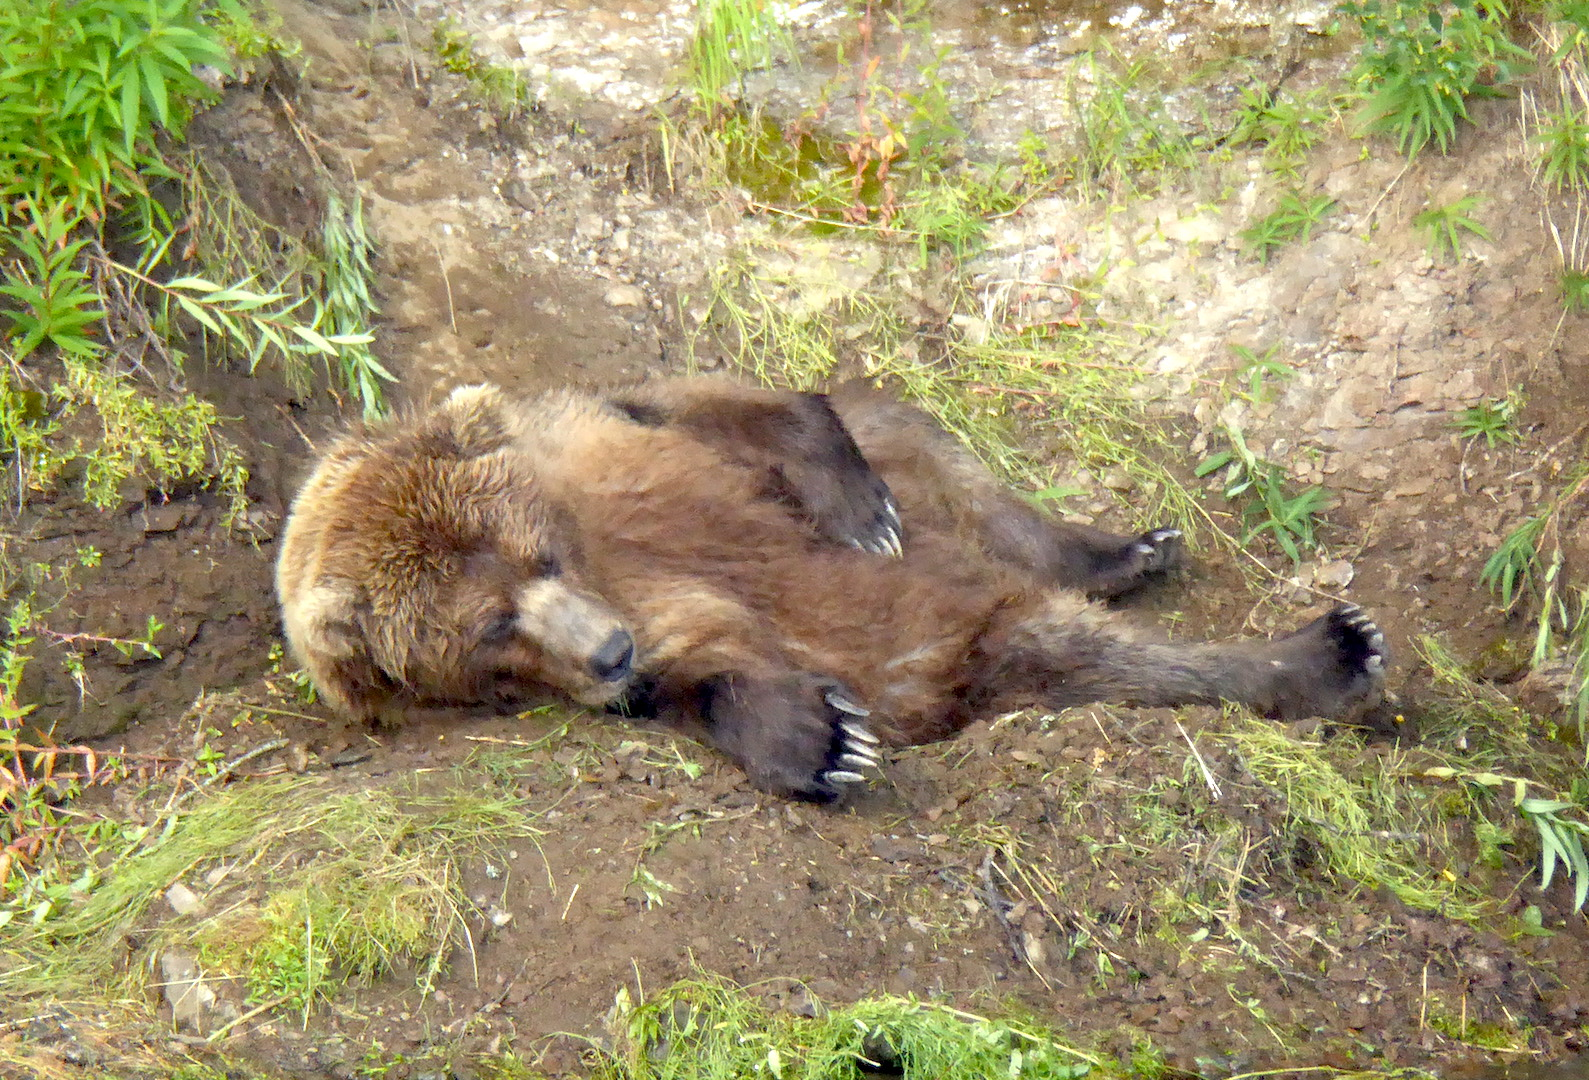 bear lying on ground